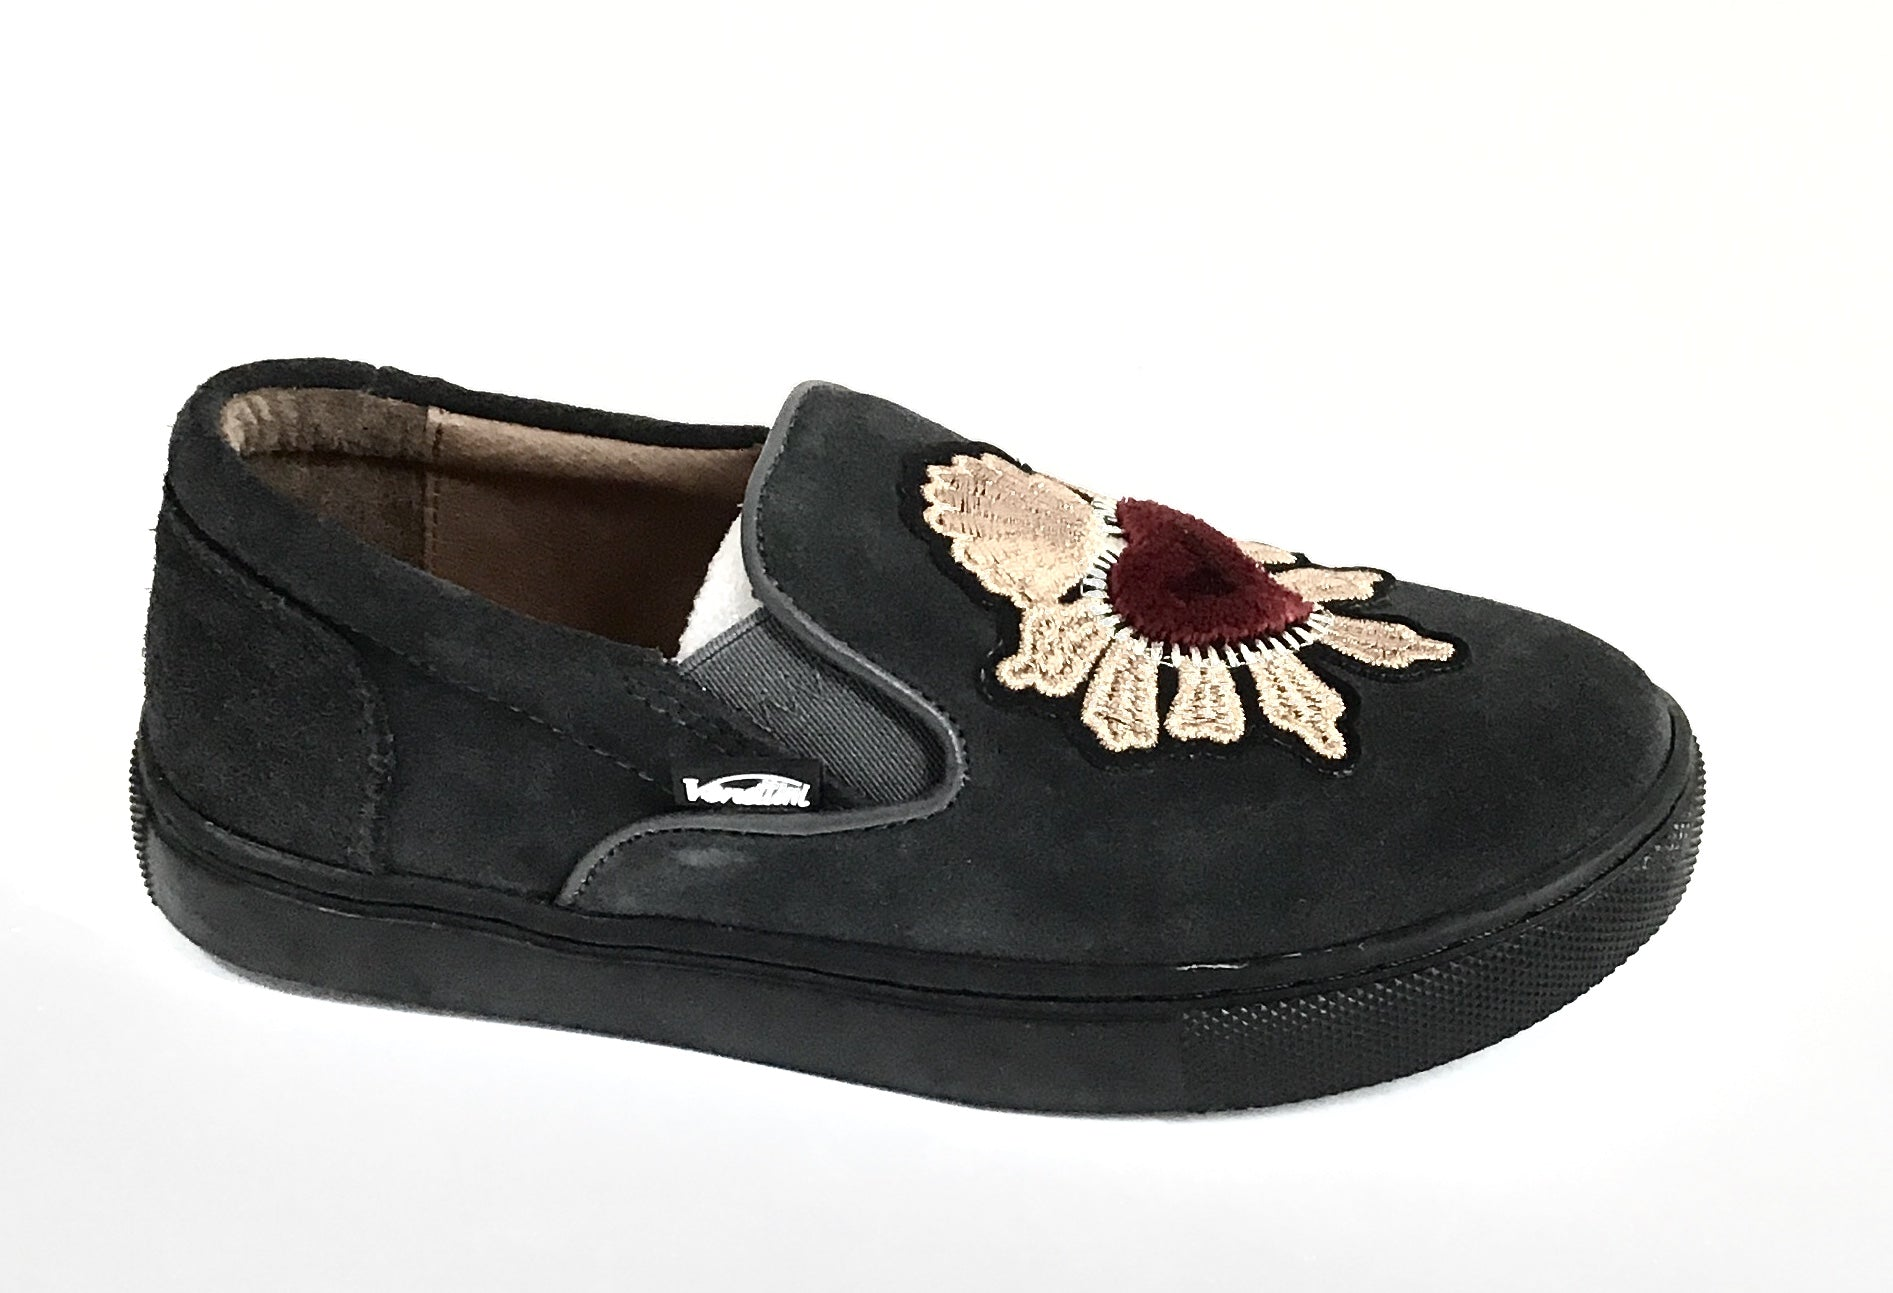 Venettini Gray Suede Slip On with Heart